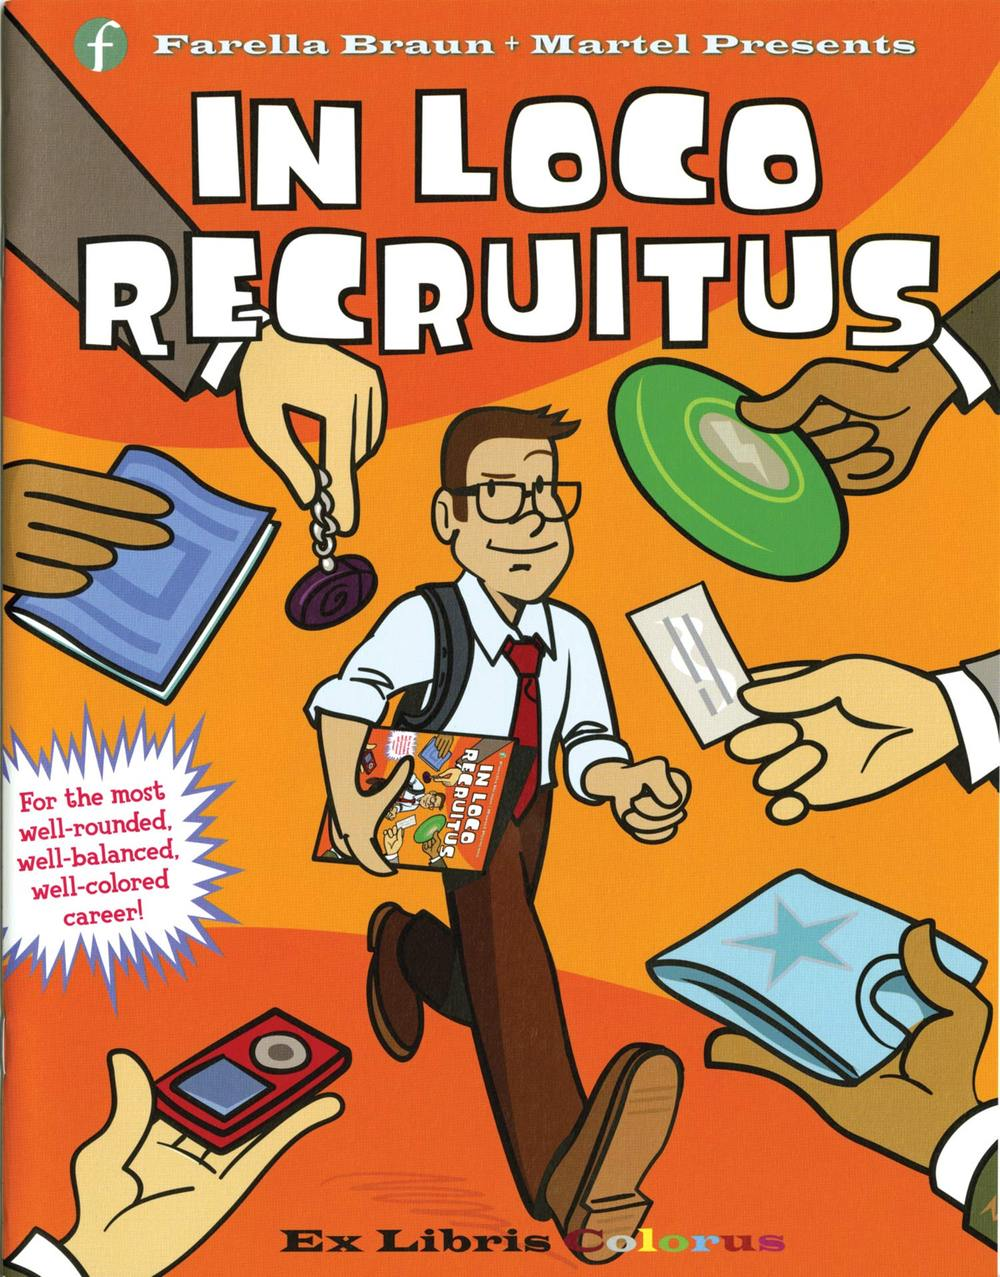 Farella Braun Recruiting Activity Book